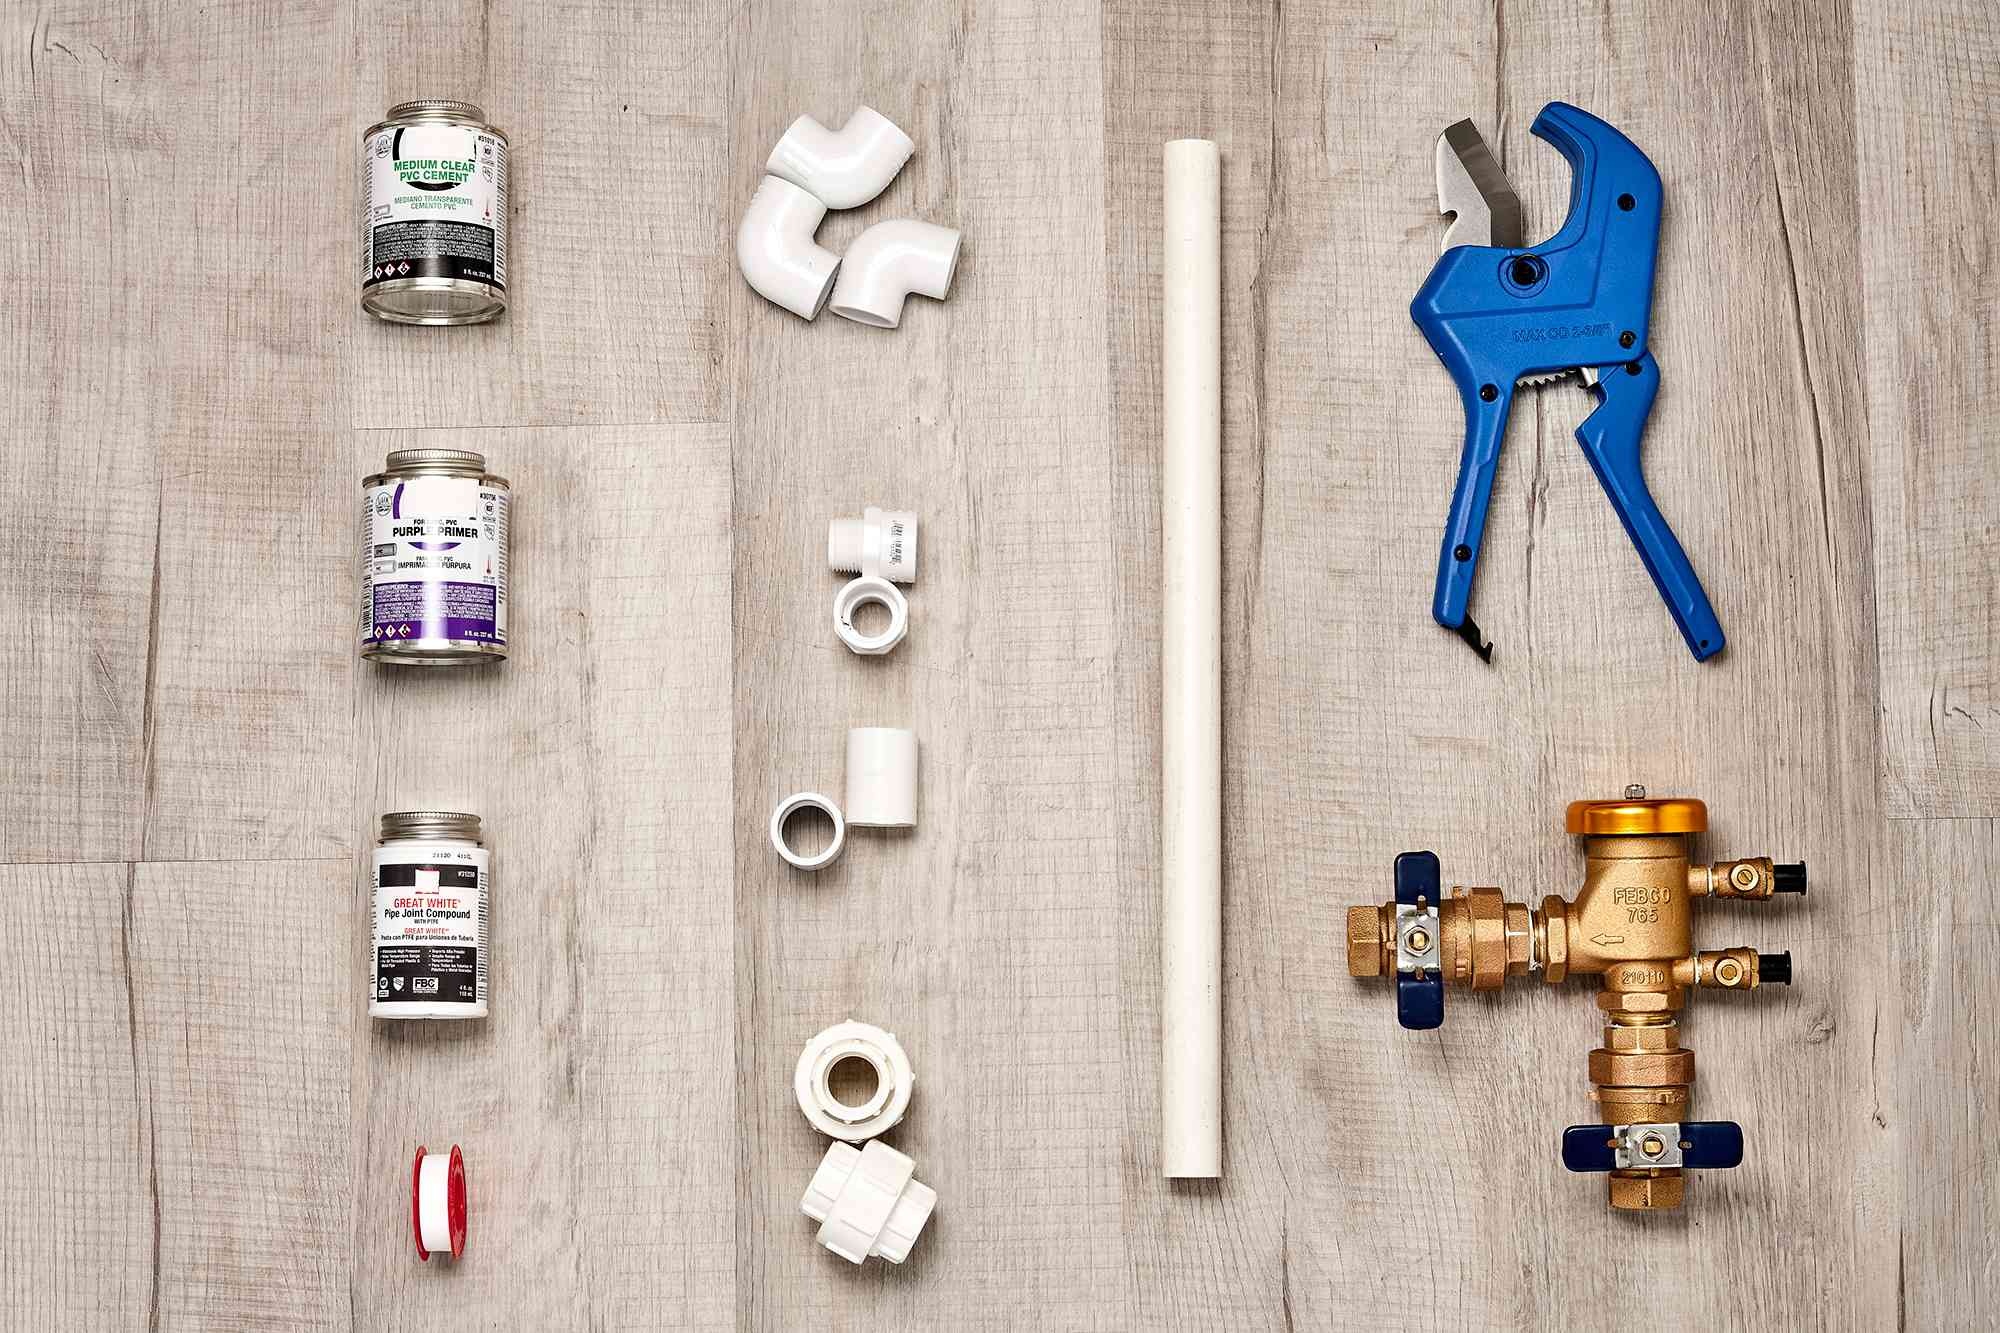 Materials and tools to replace an irrigation system's pressure-vacuum breaker